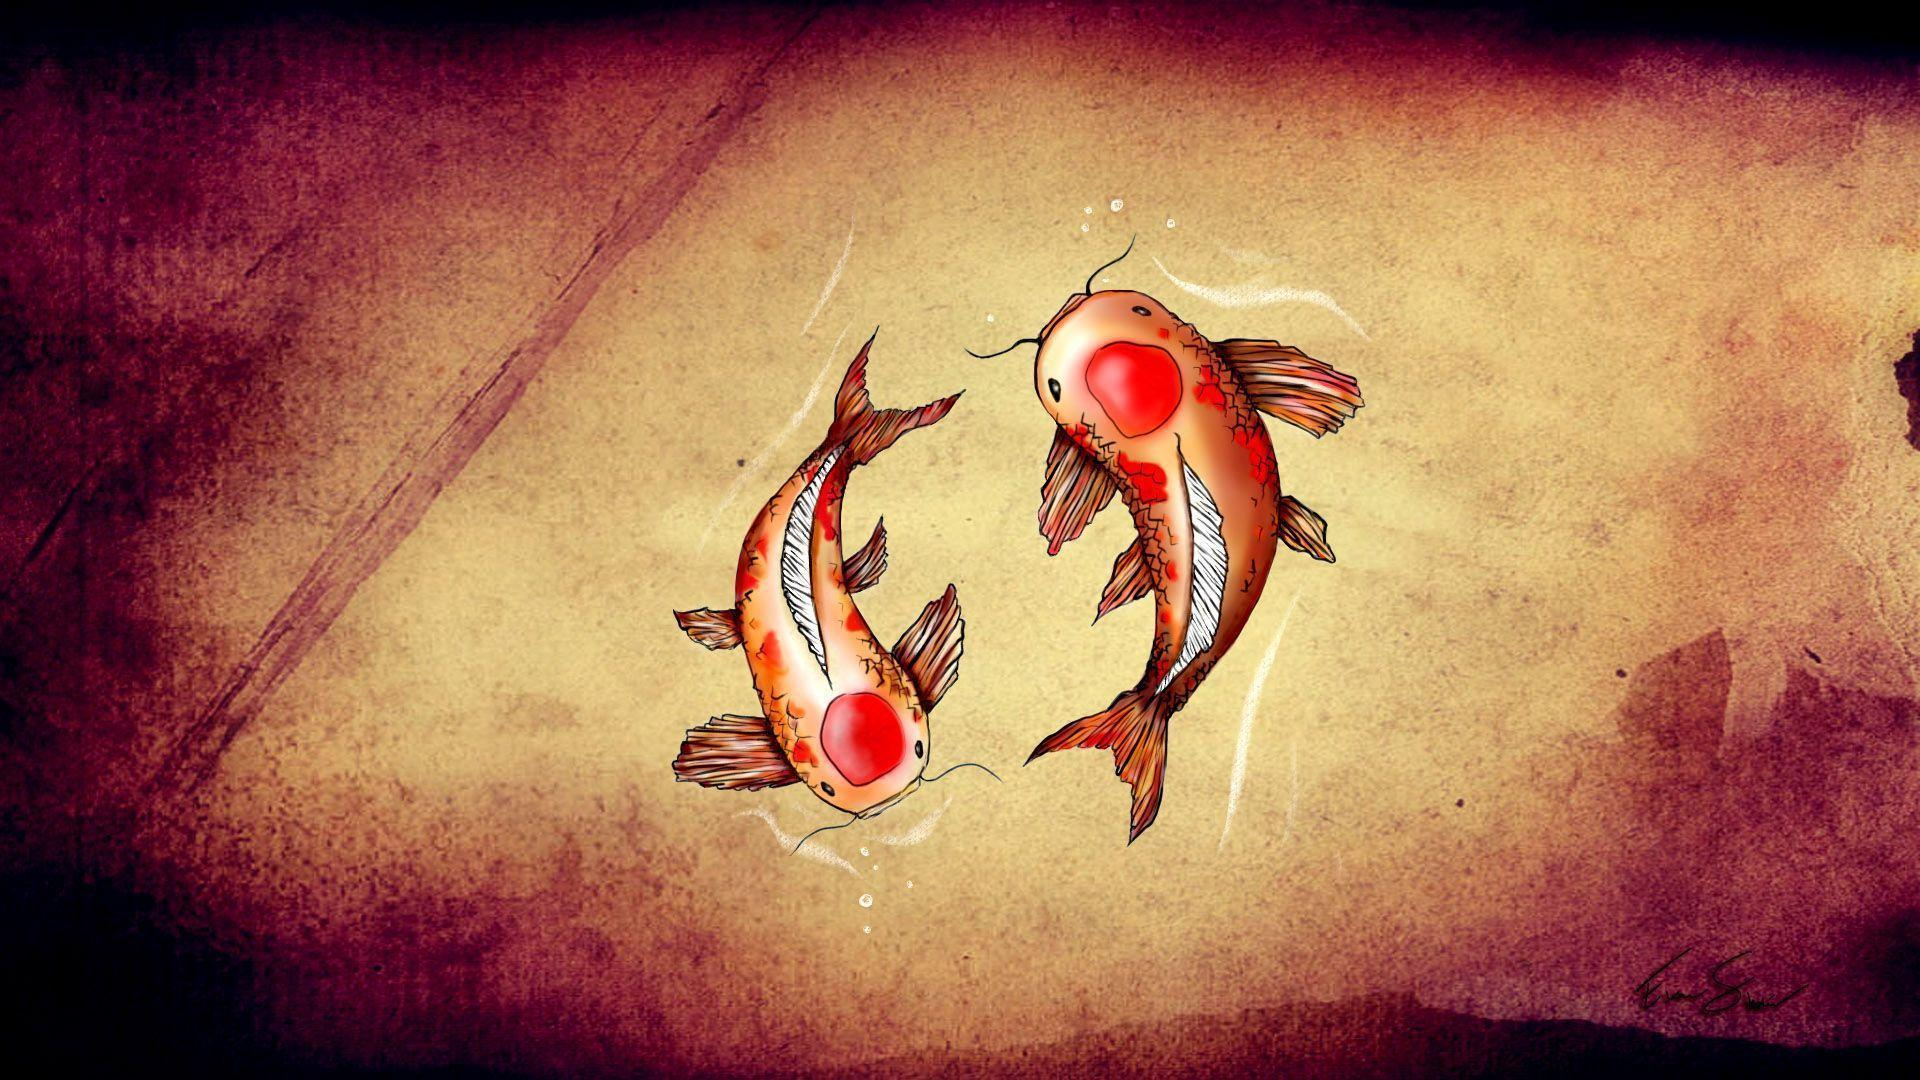 Koi Fish Backgrounds - Wallpaper Cave